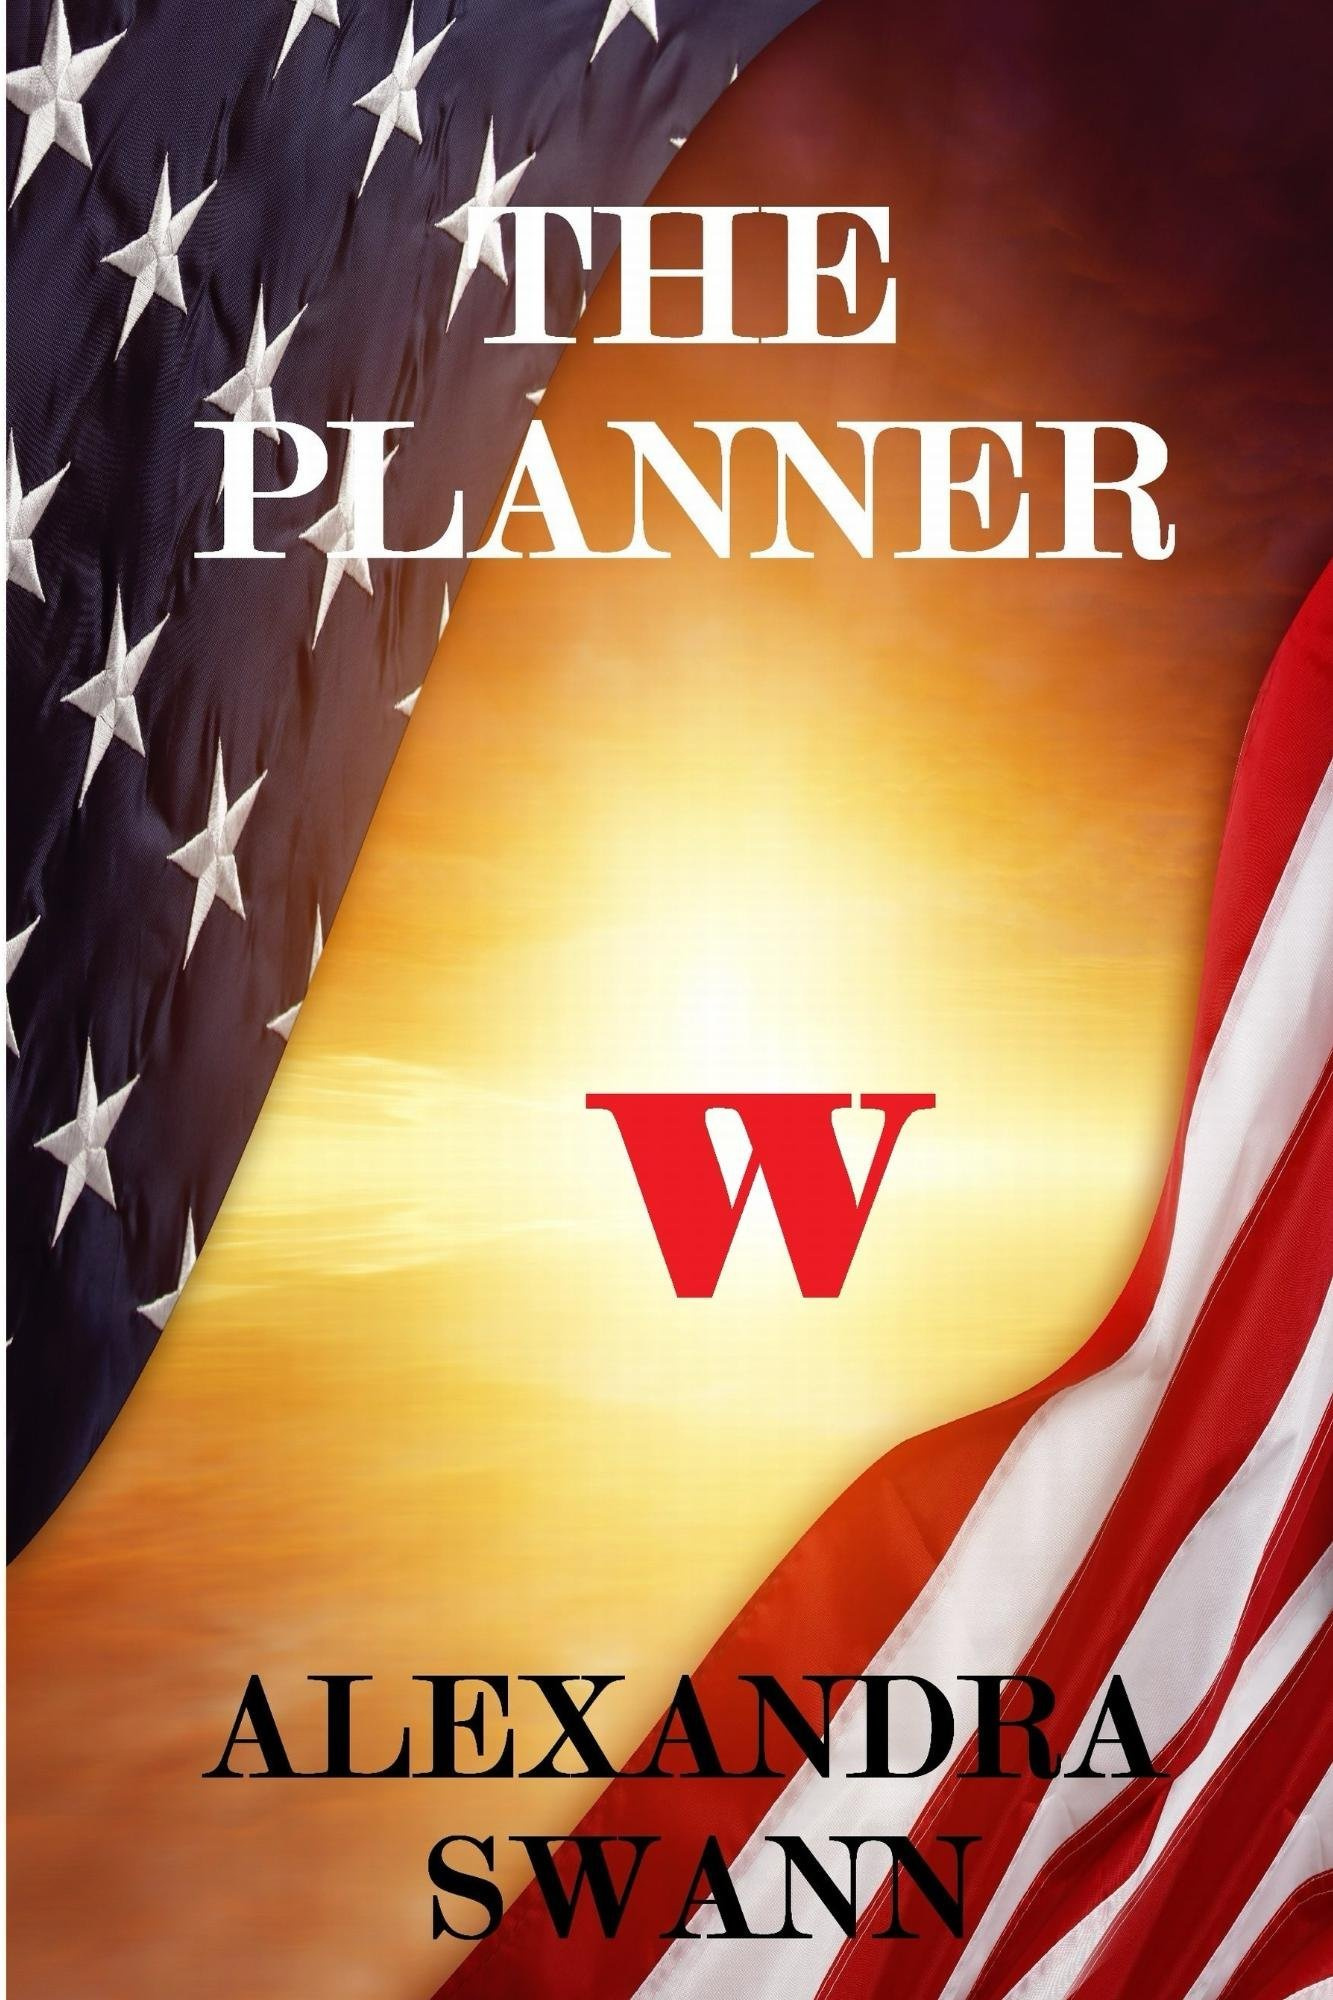 https://0201.nccdn.net/1_2/000/000/191/252/The_Planner_Cover_for_Kindle-1333x2000.jpg